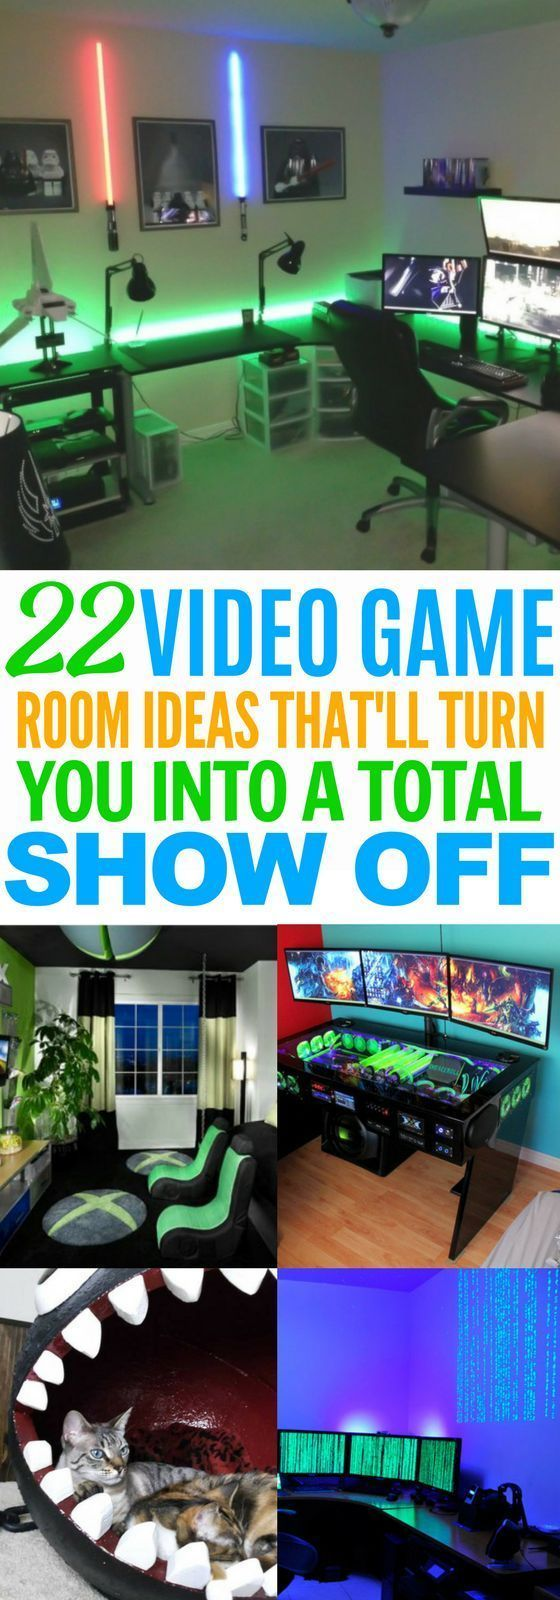 Video Game Room Ideas That Are Insanely Awesome images